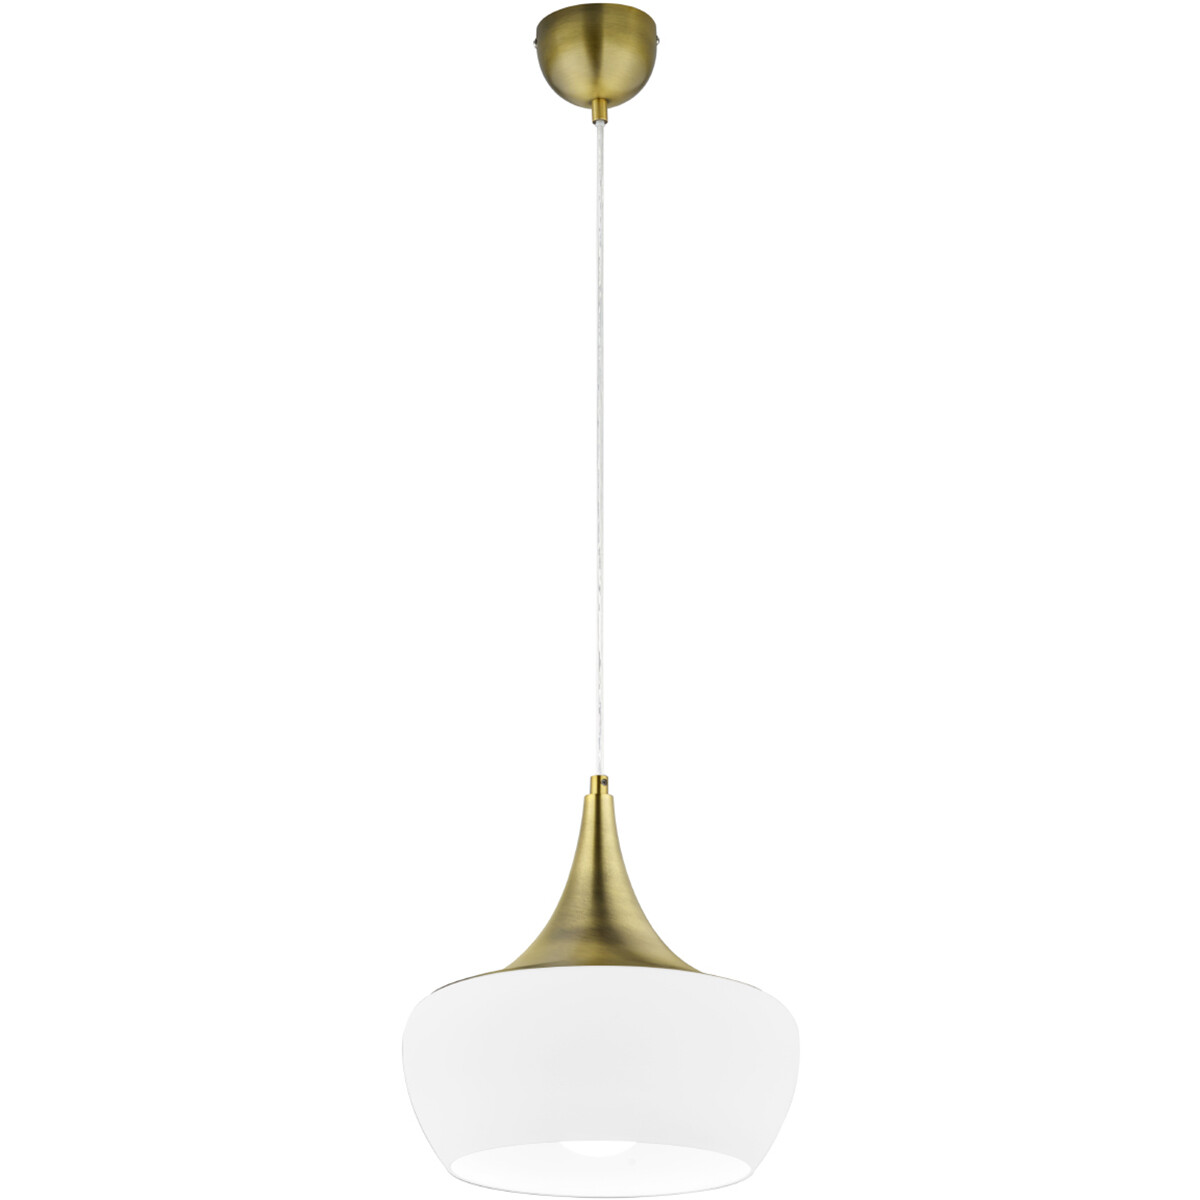 LED Hanglamp - Hangverlichting - Trion Trompo - E27 Fitting - 1-lichts - Rond - Oud Brons - Aluminiu